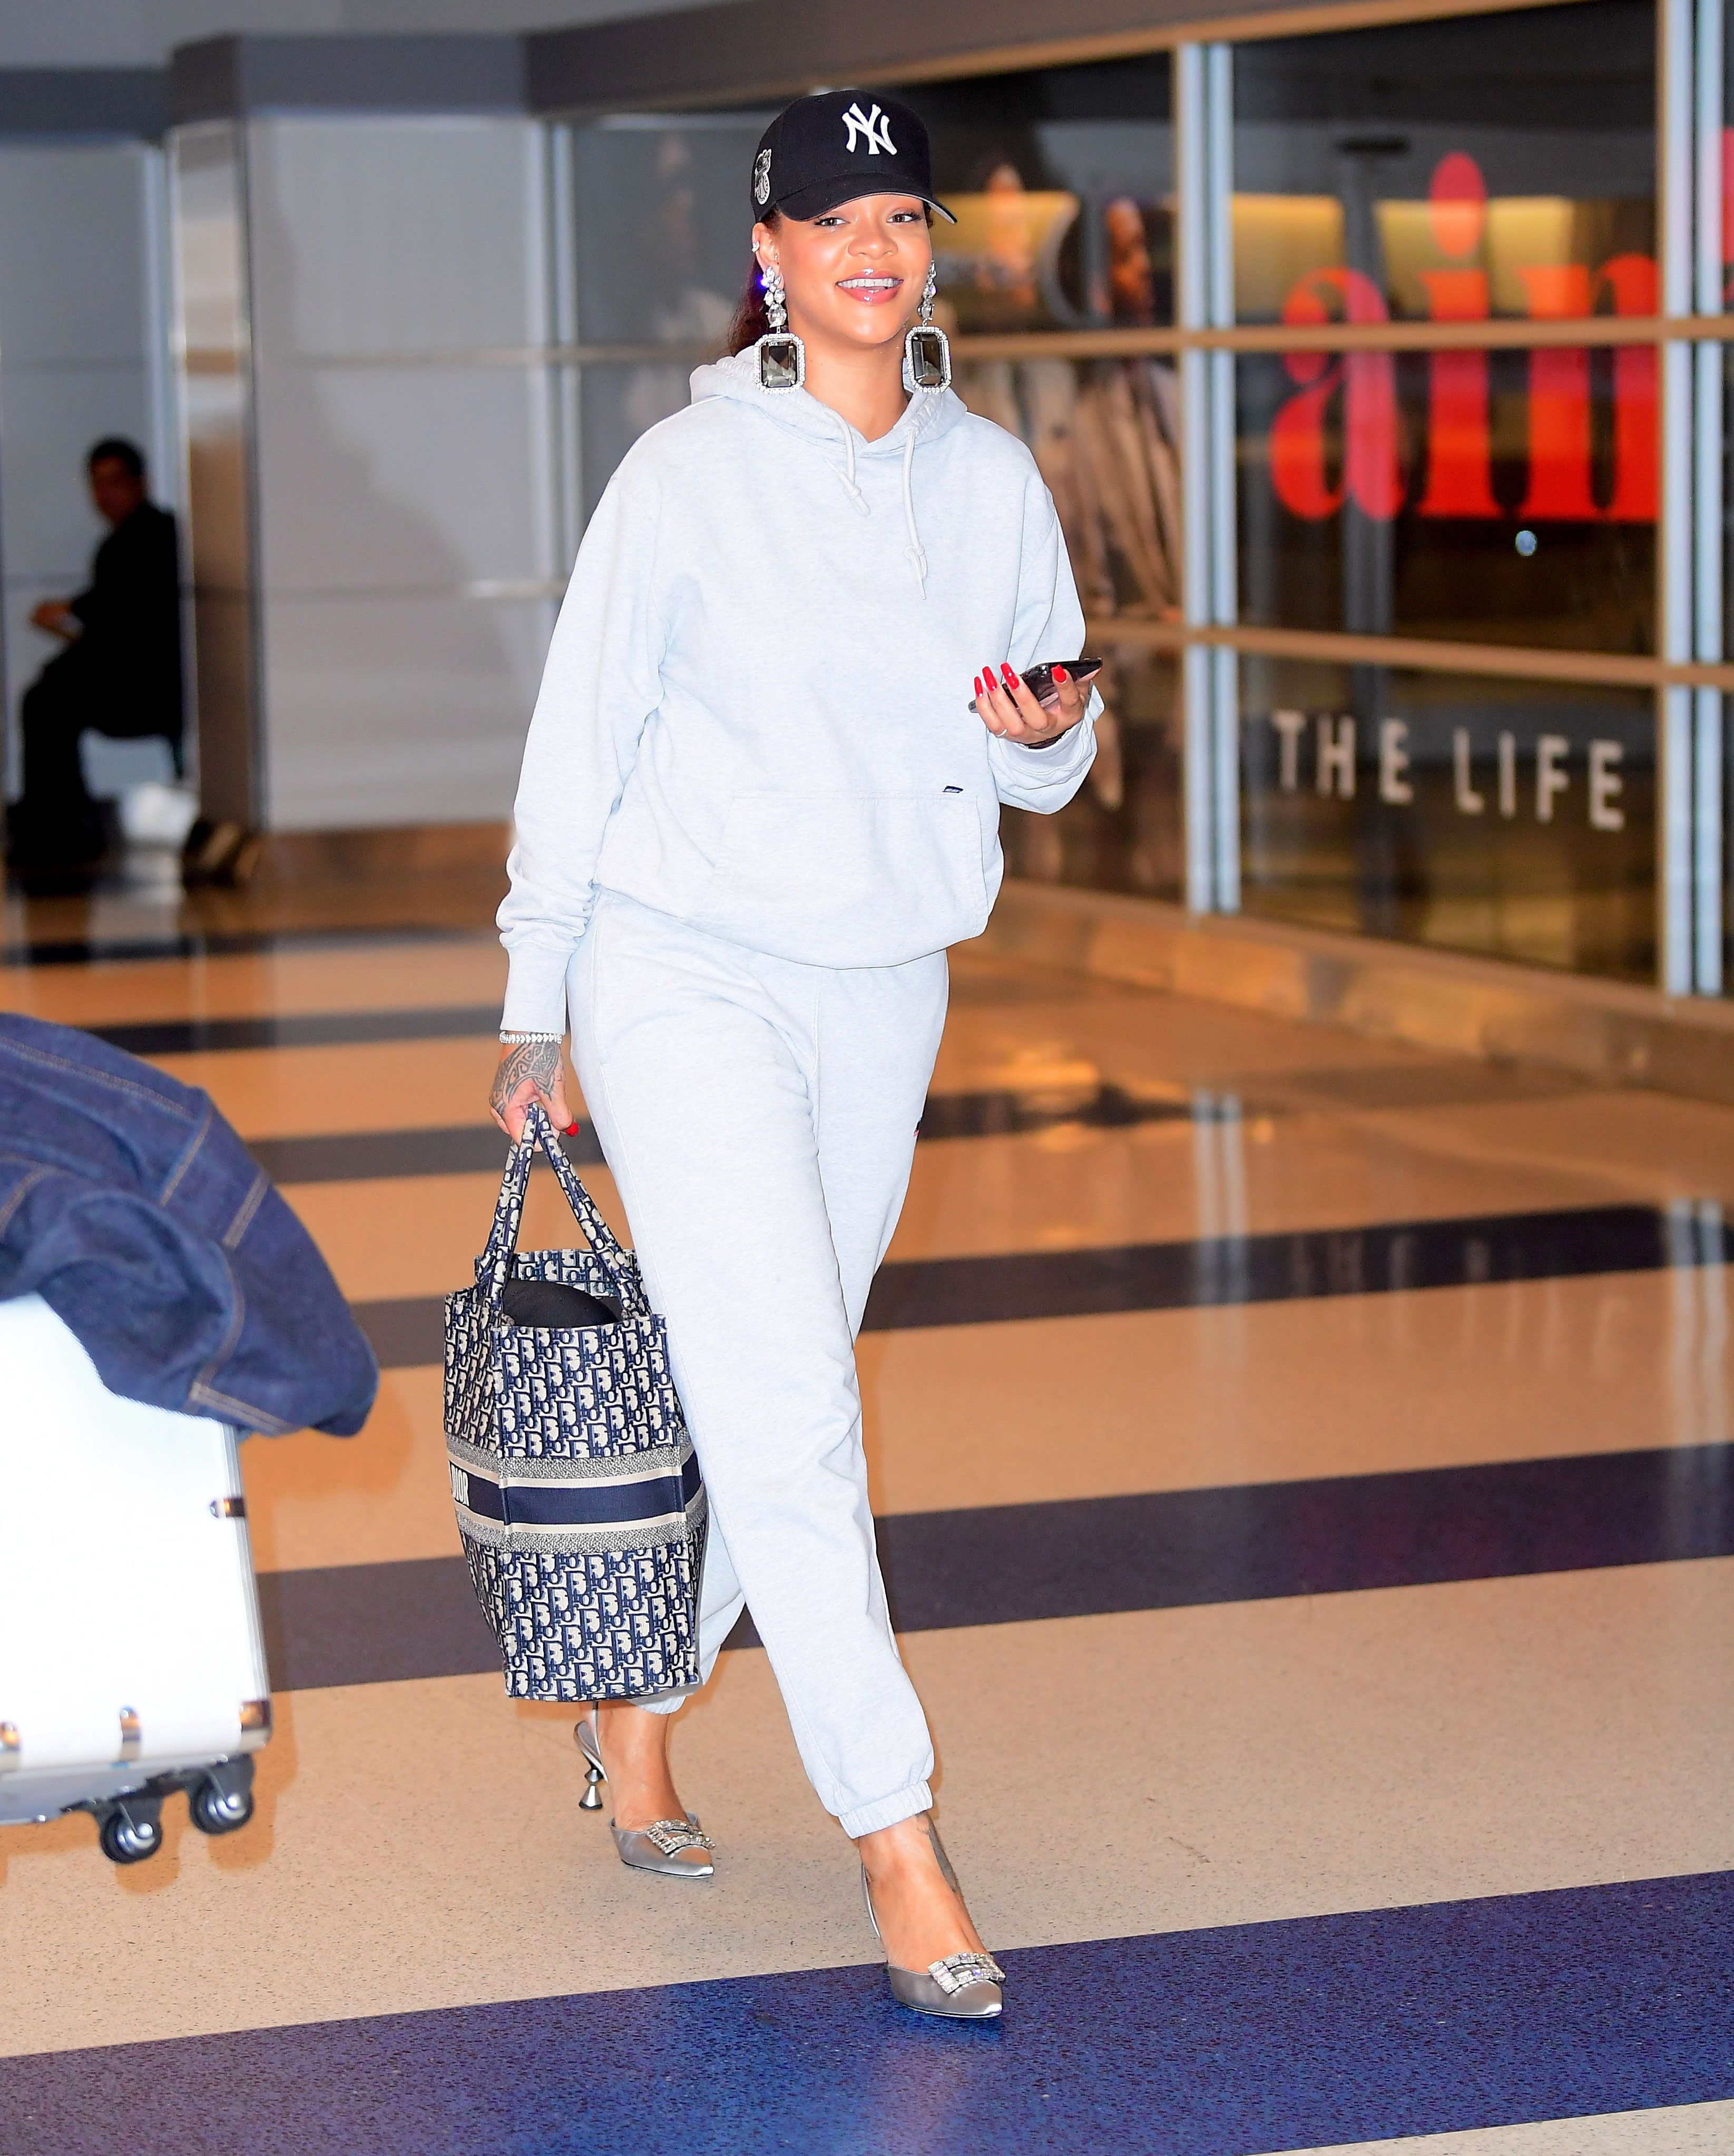 Rihanna Flawlessly Paired Manolo Blahnik Heels With Sweats at the Airport